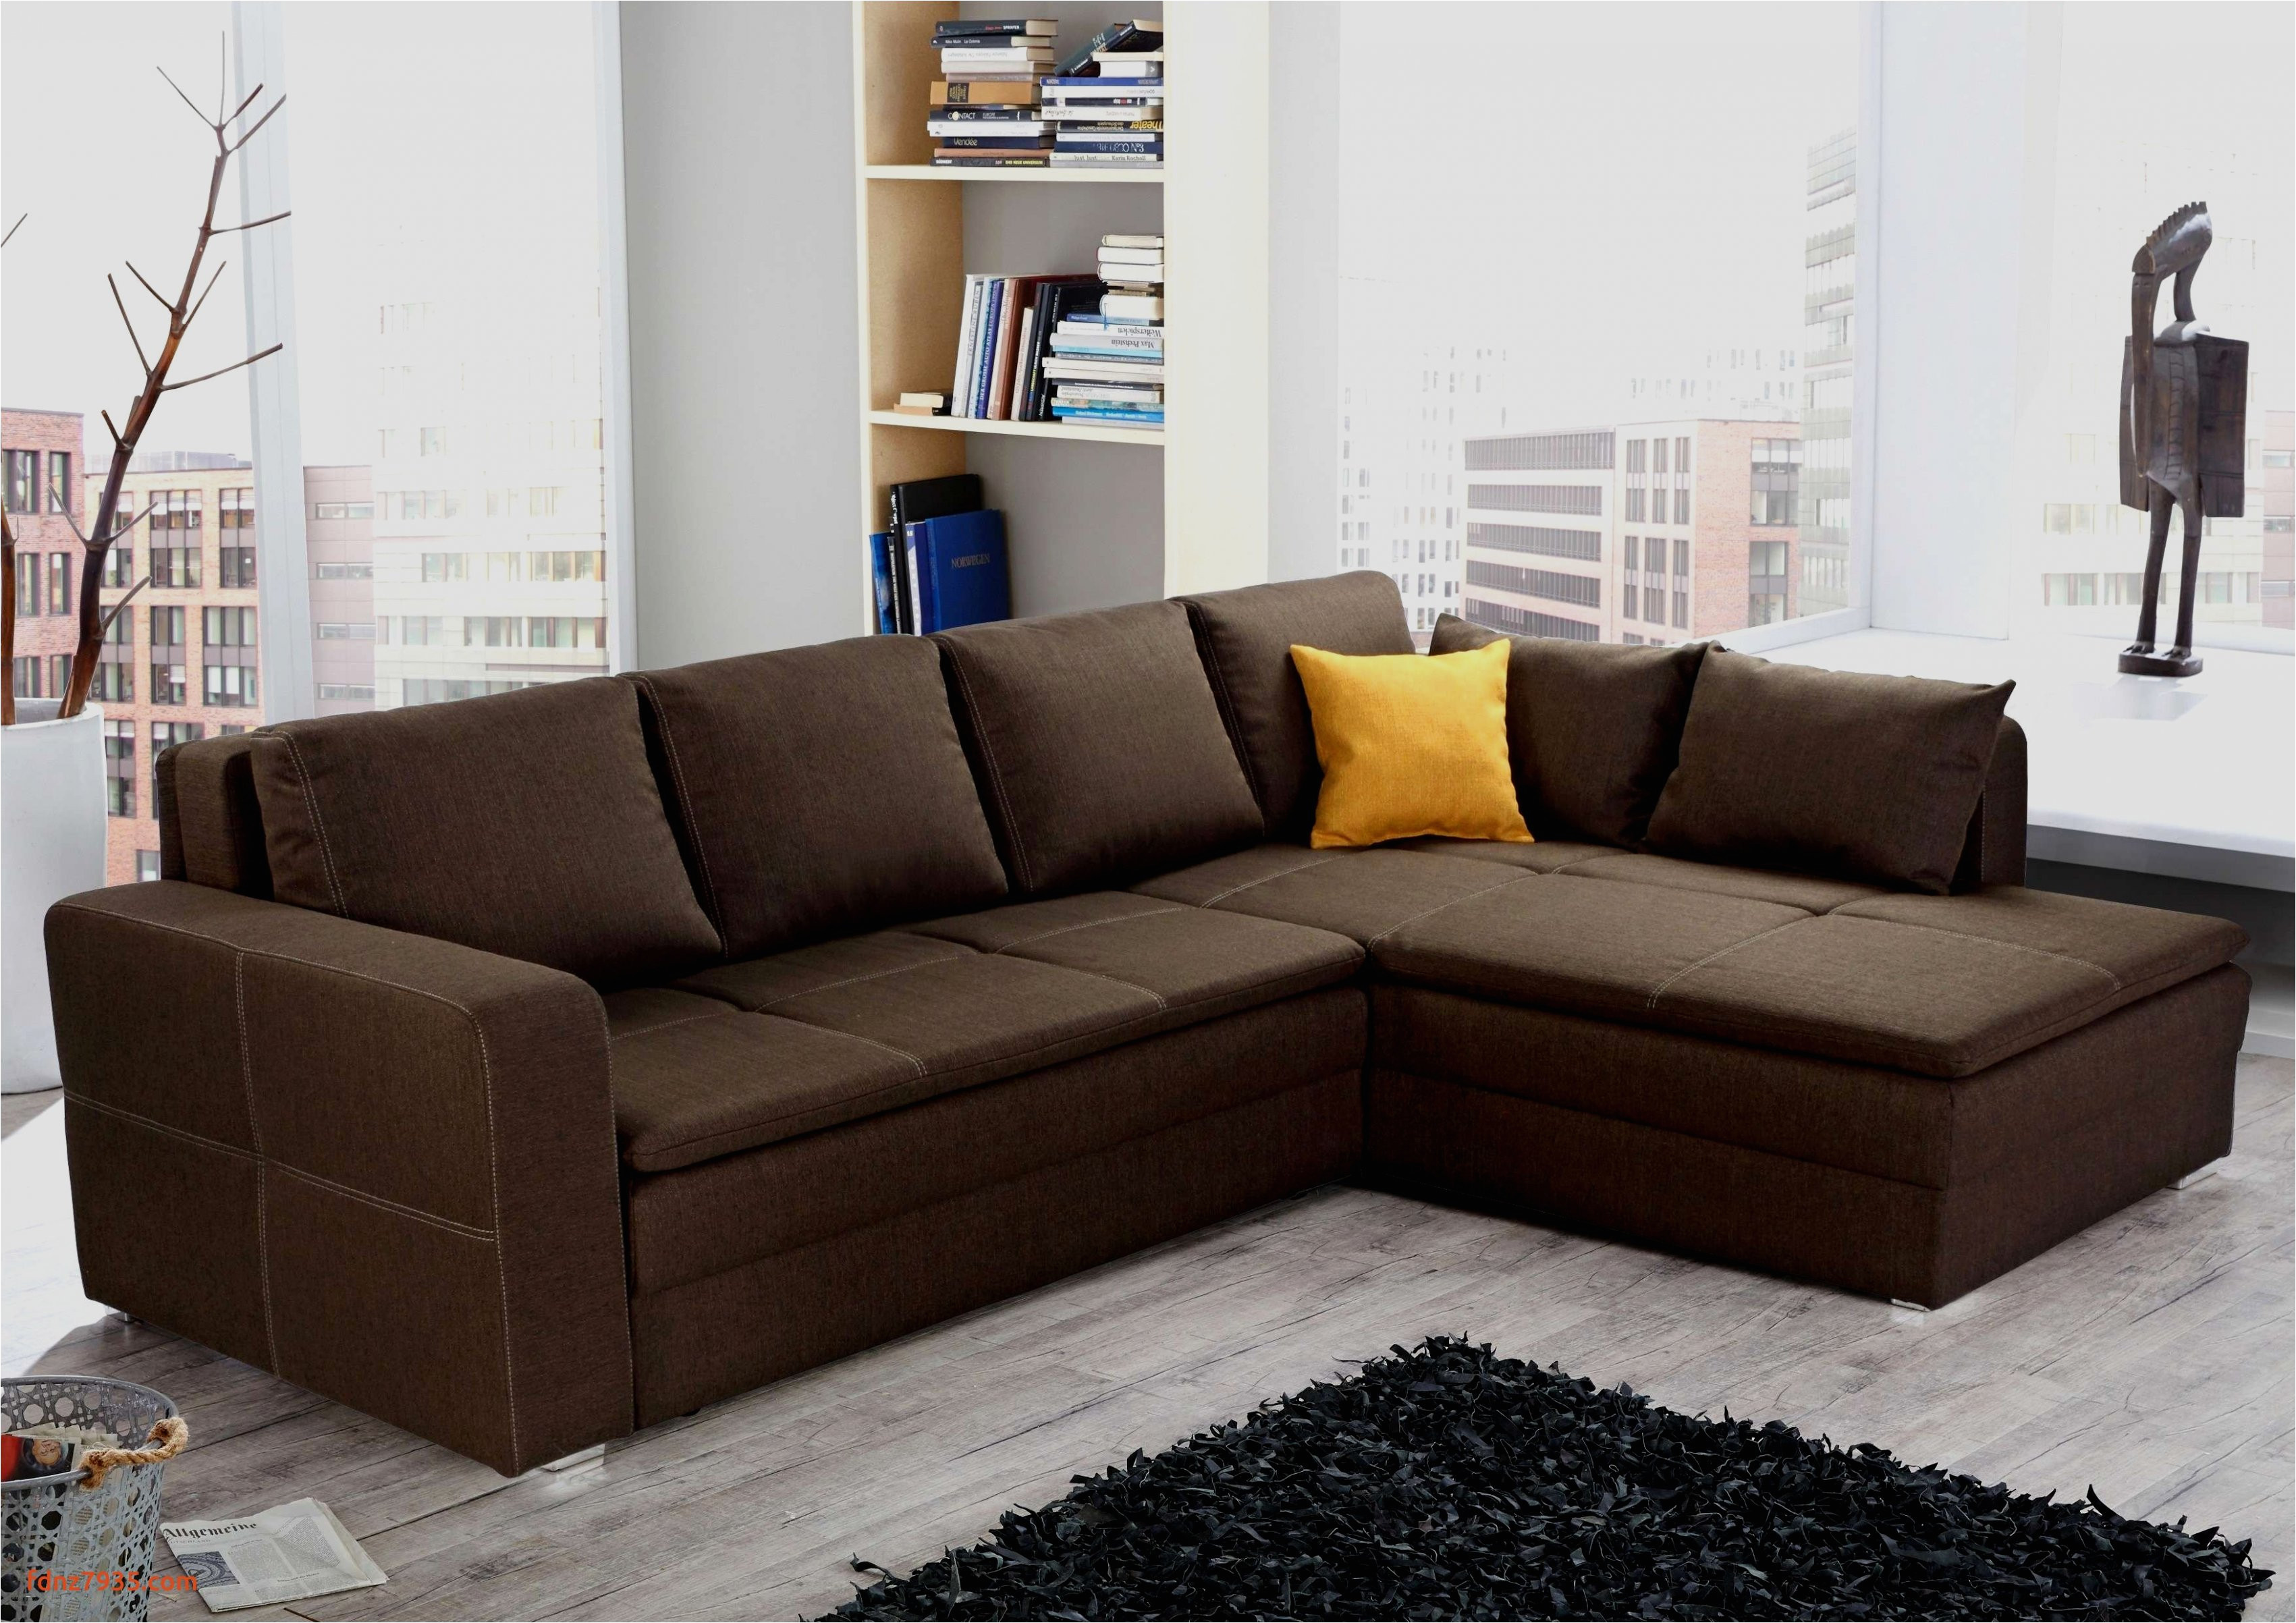 sofa with chaise fresh sofa design schon moderne sofas